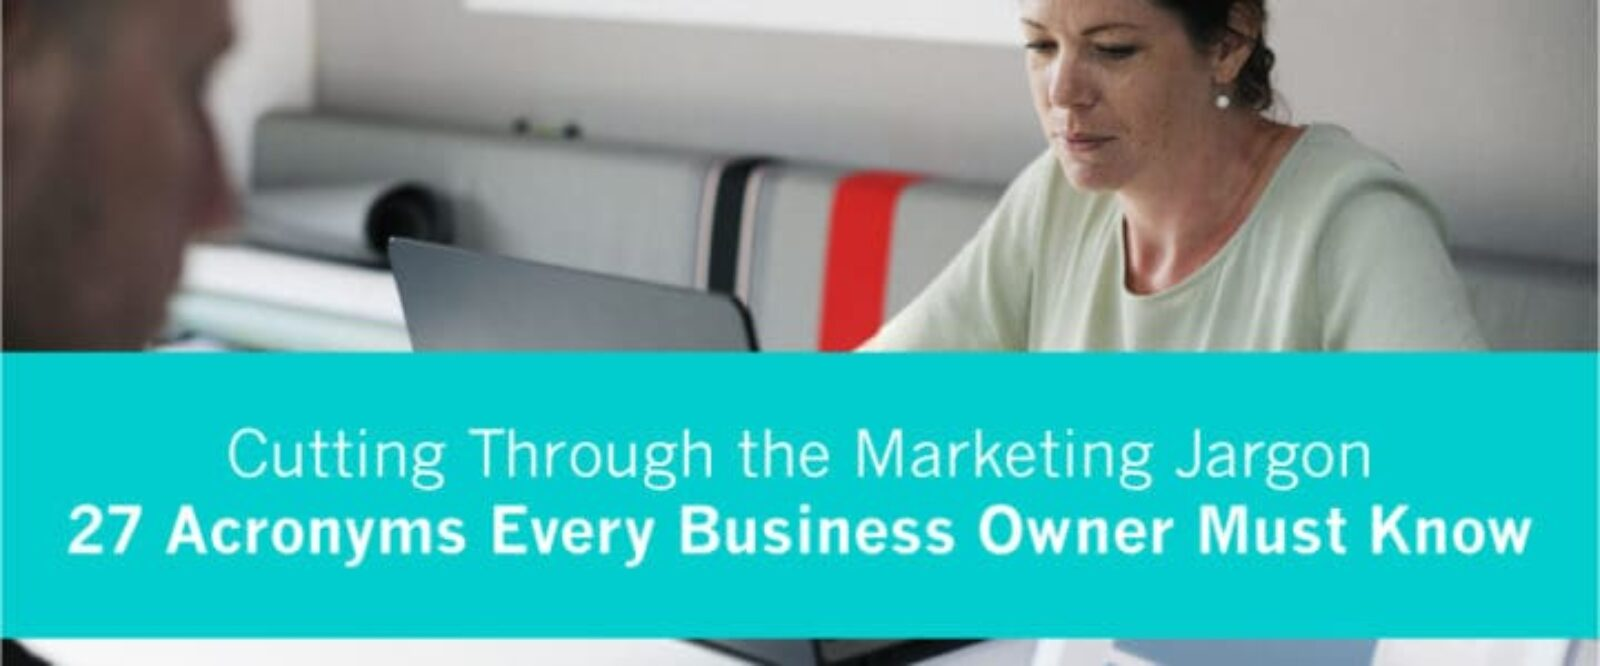 27 Essential Digital Marketing Acronyms Every Business Owner Must Know